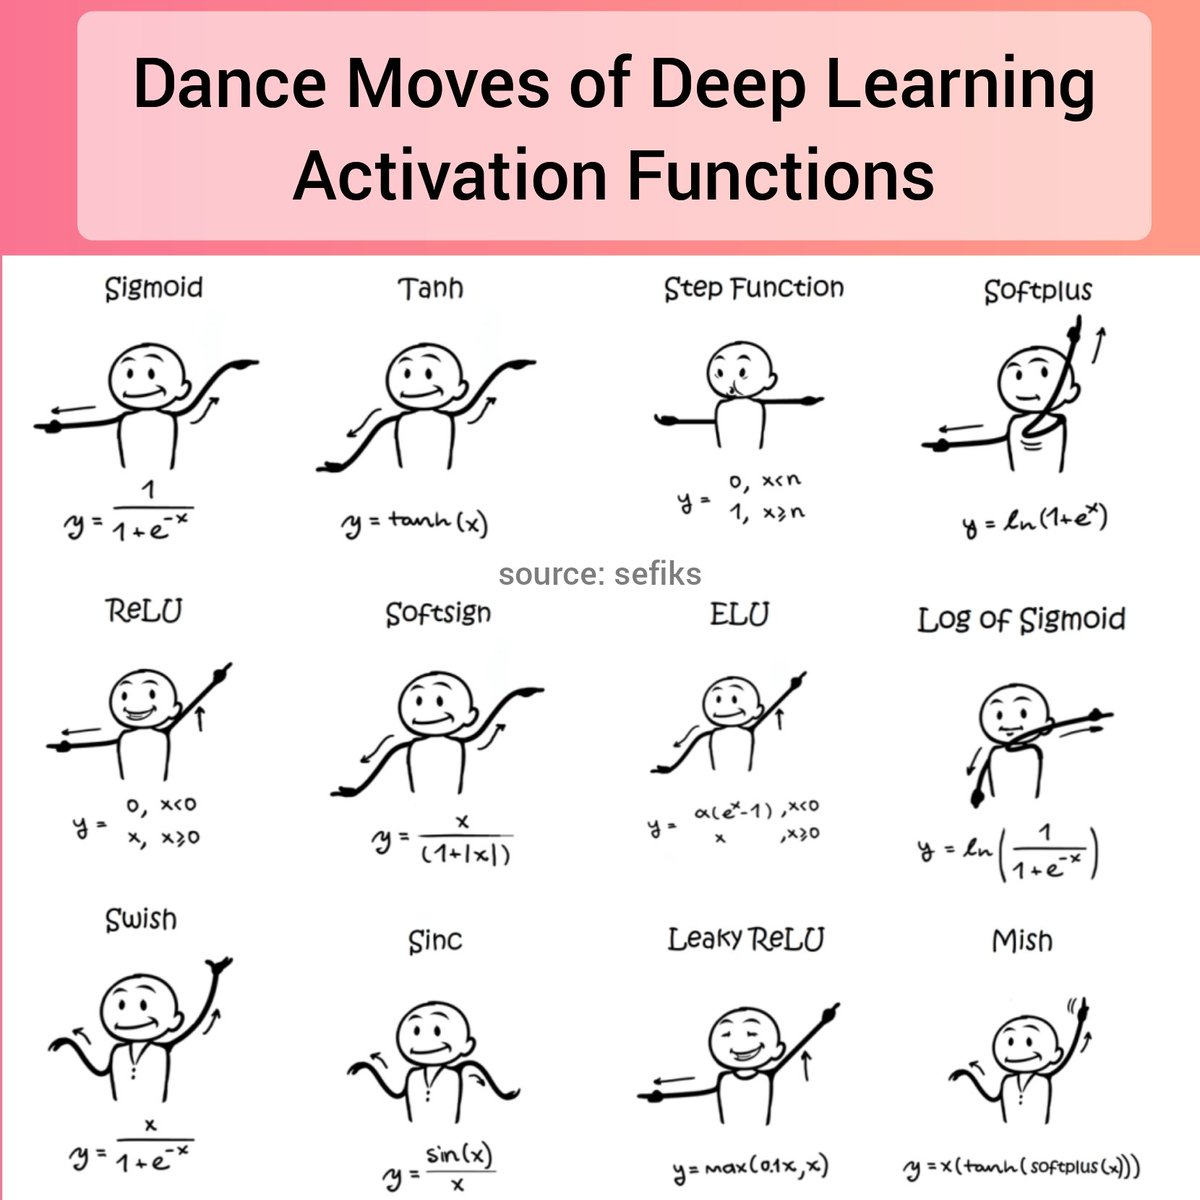 😲 Deep Learning Activation Functions using Dance Moves  #DeepLearning #MachineLearning #ArtificialIntelligence #AI #ML https://t.co/1hQTmSM4Vv